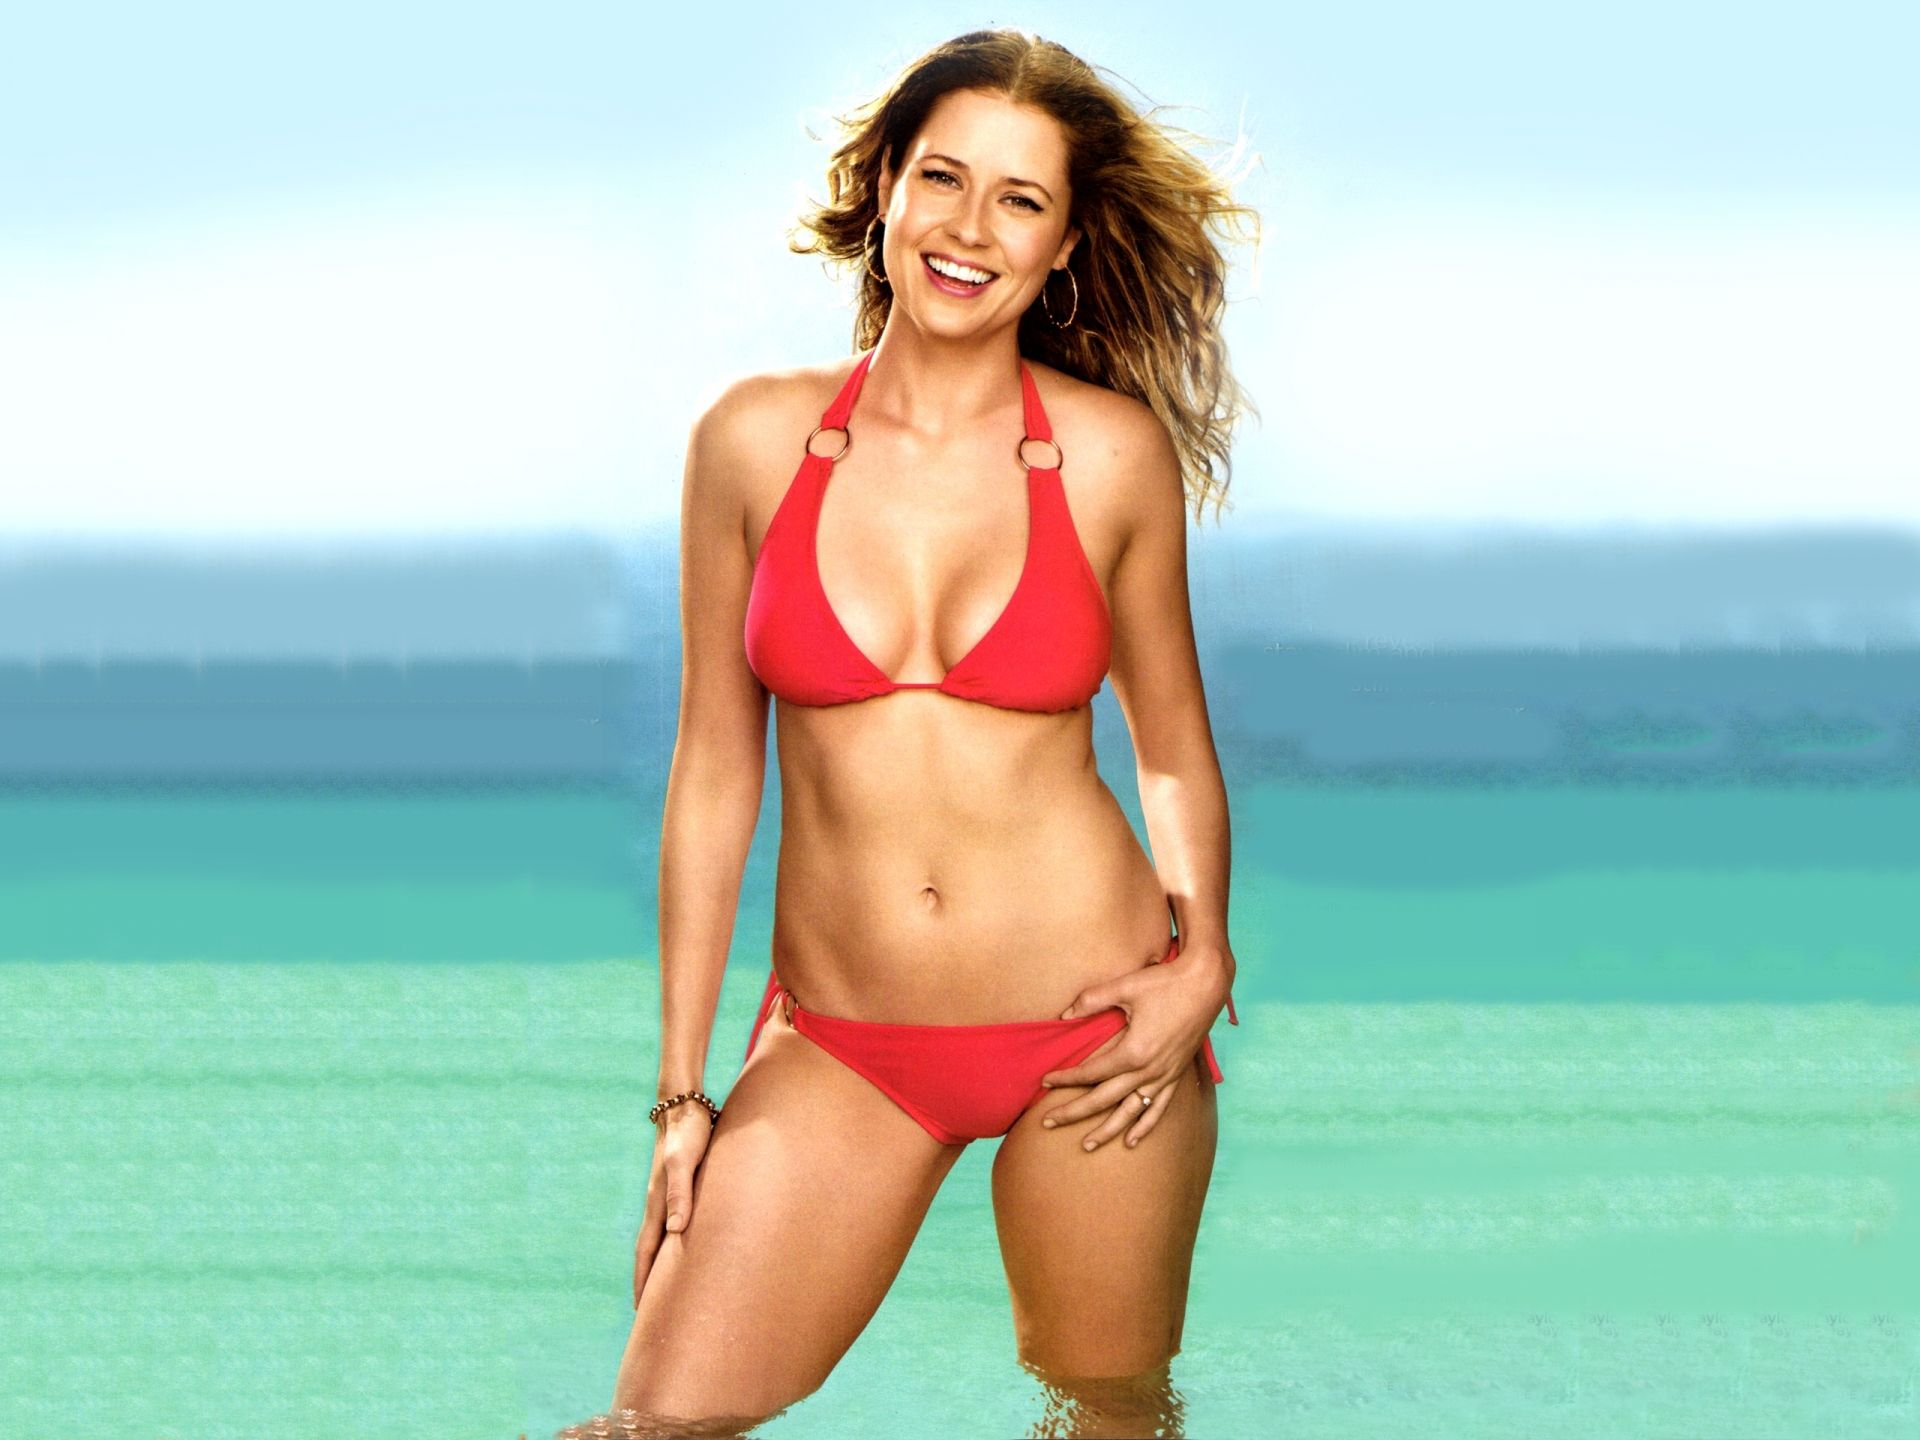 jenna fischer redditjenna fischer 2016, jenna fischer man with a plan, jenna fischer wallpaper, jenna fischer the office, jenna fischer director, jenna fischer 2014, jenna fischer angela kinsey, jenna fischer 2012, jenna fischer reddit, jenna fischer and emily blunt, jenna fischer and carrie fisher, jenna fischer instagram, jenna fischer husband, jenna fischer and john krasinski, jenna fischer insta, jenna fischer ice cream, jenna fischer pregnant while on the office, jenna fischer twitter, jenna fischer photography, jenna fischer daughter